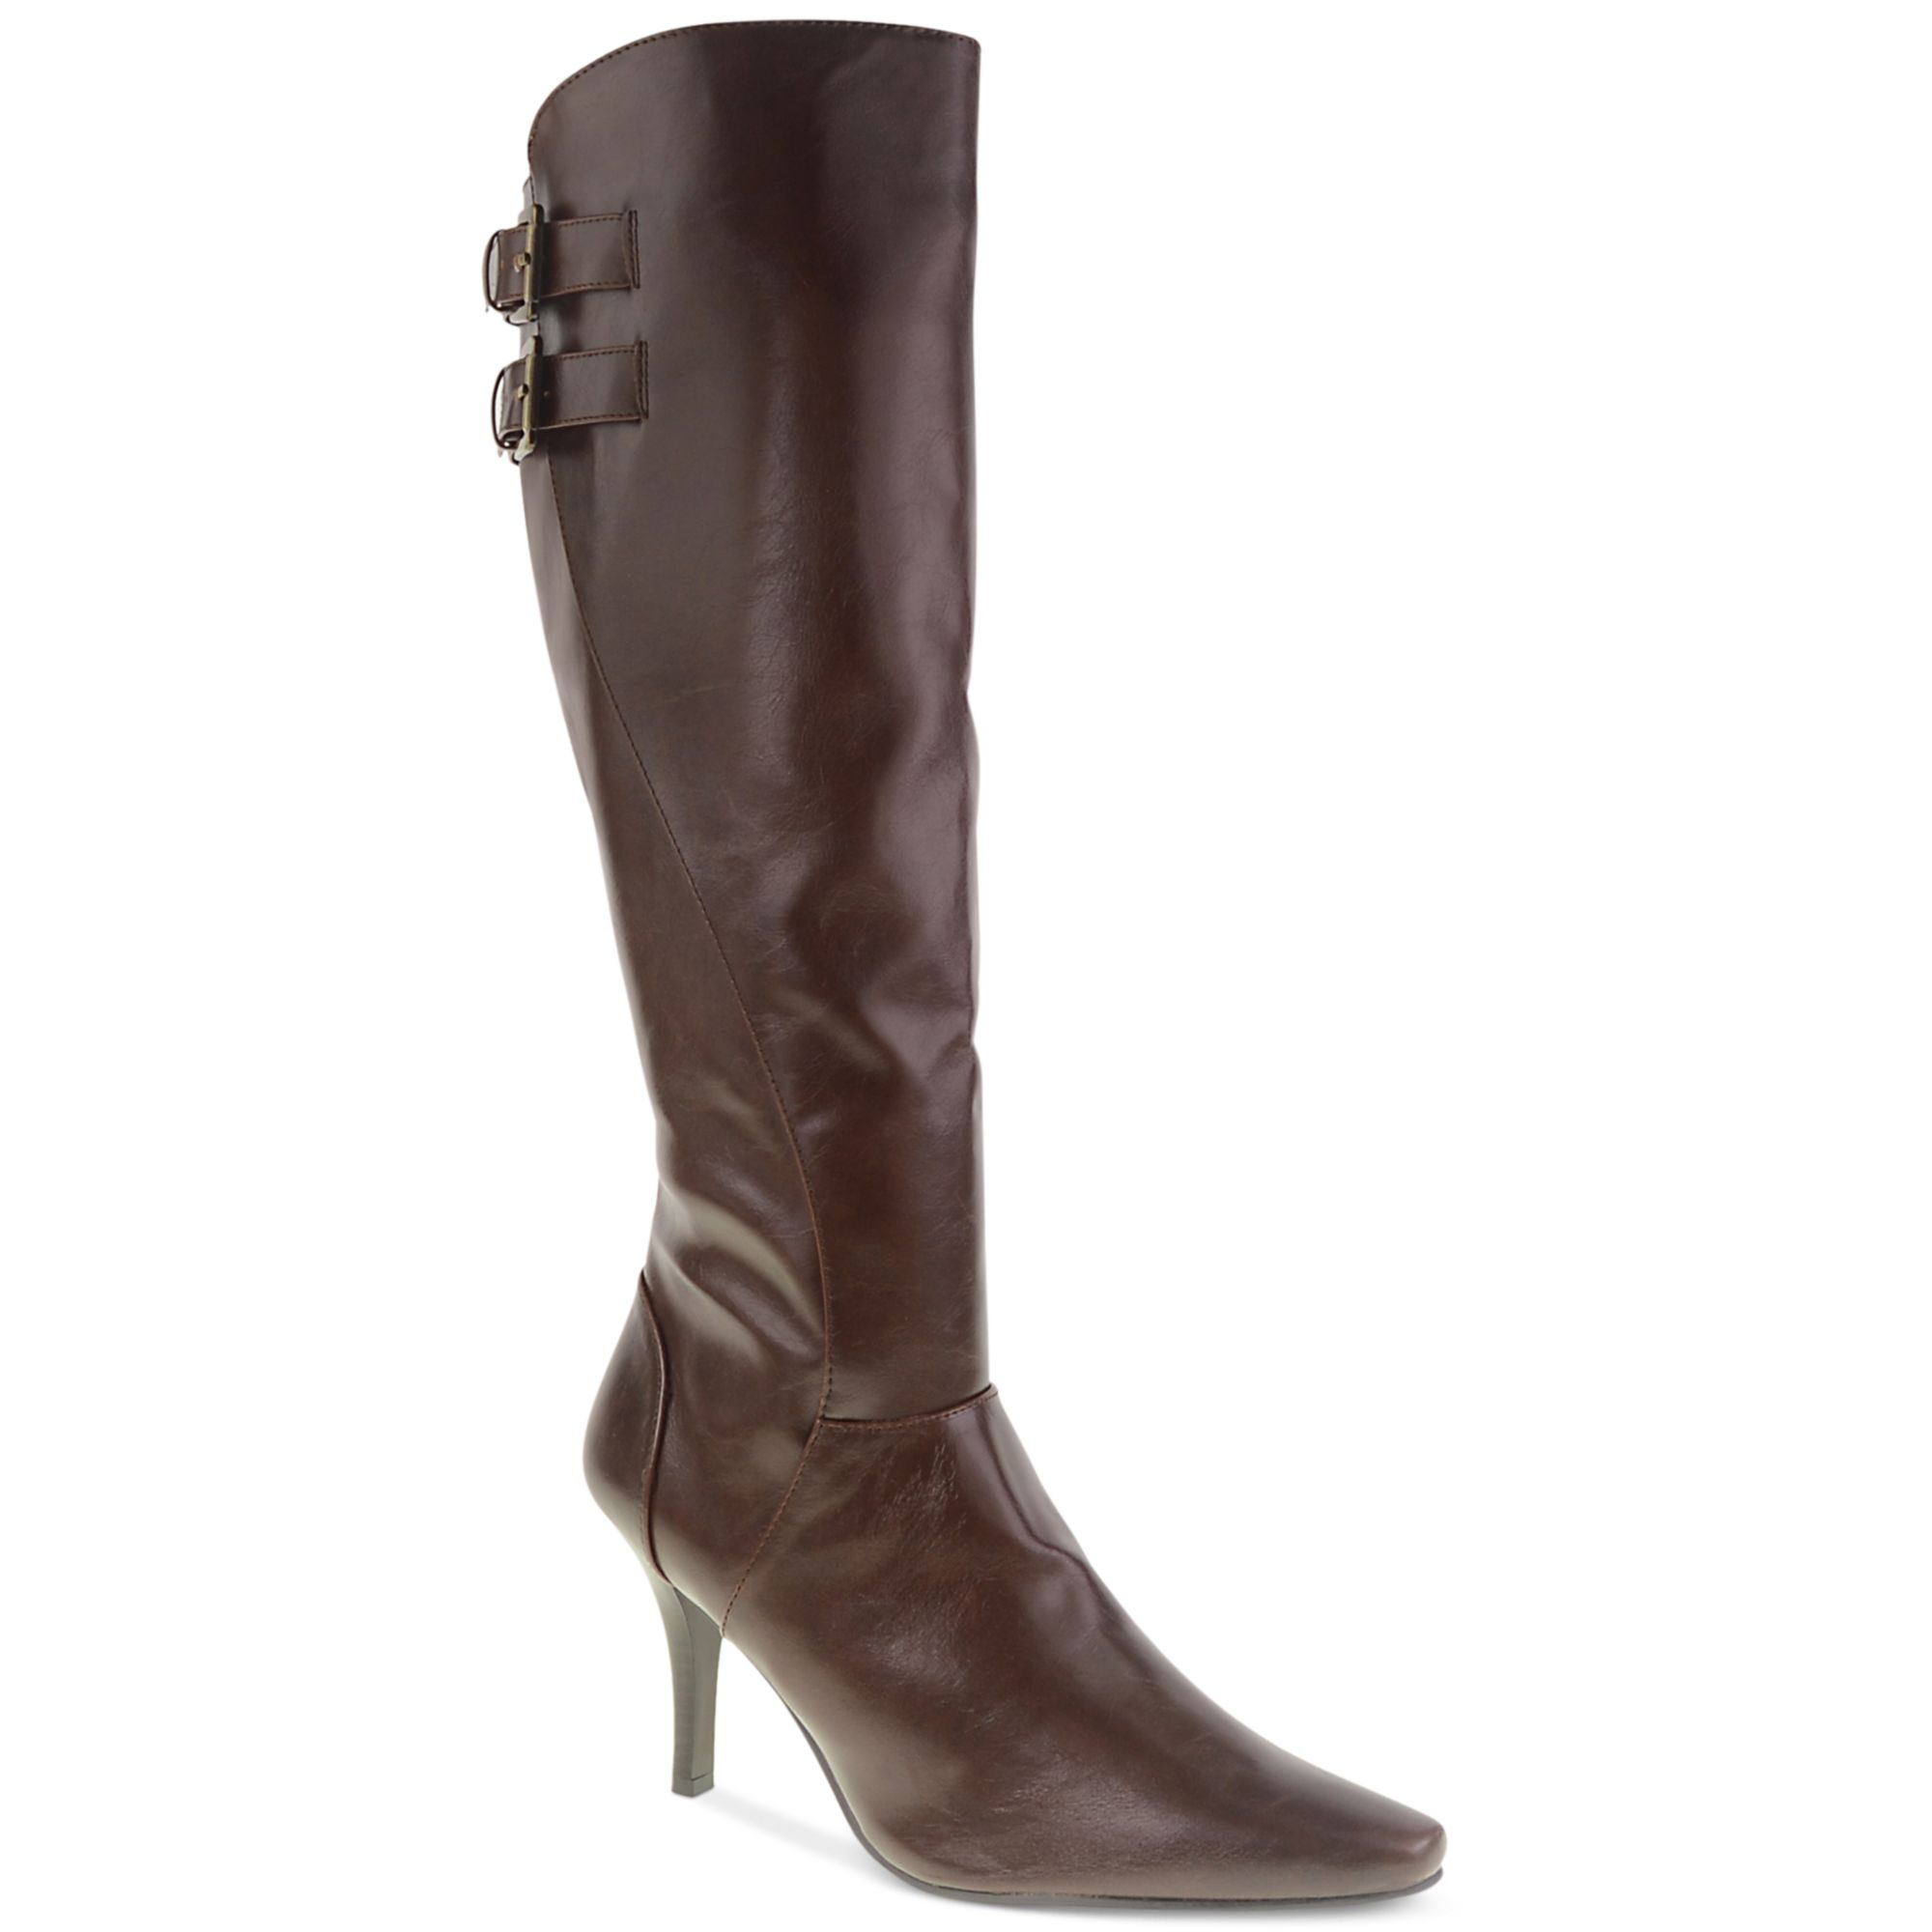 Chinese Laundry Cl By Laundry Shoes Sweetheart Tall Boots ...